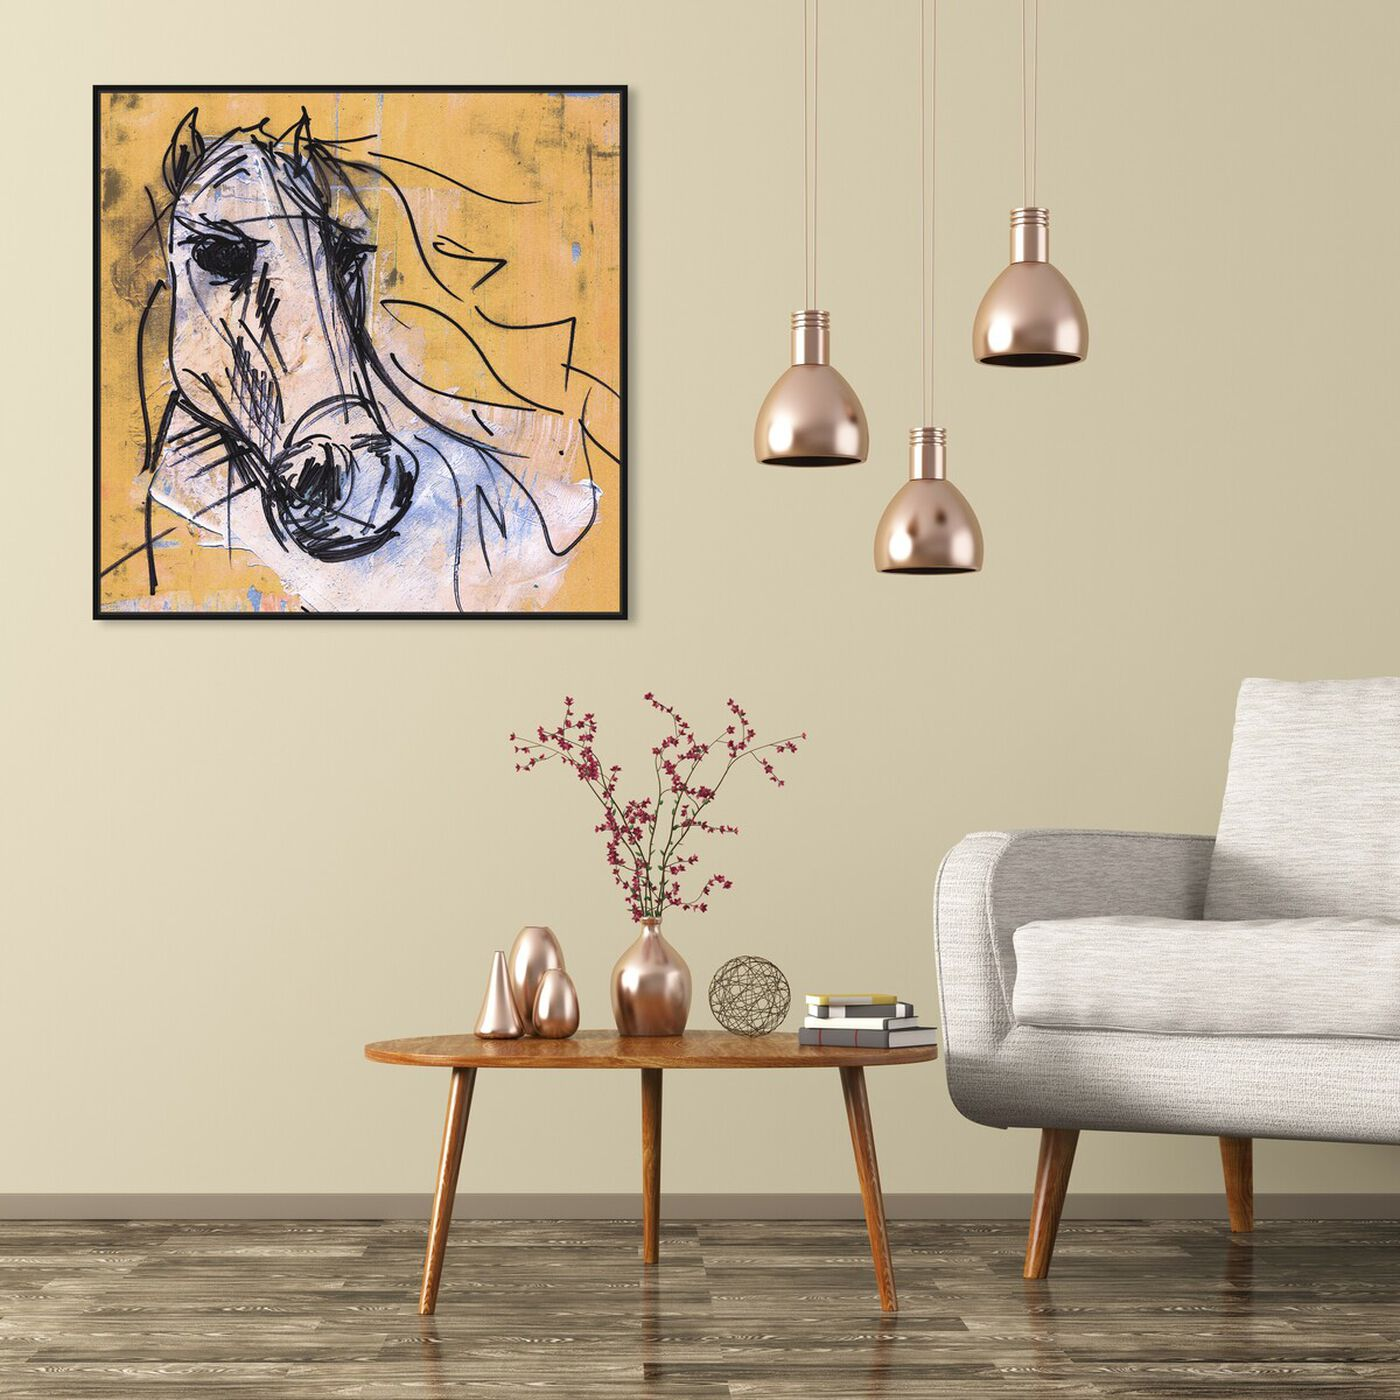 Hanging view of Horse Study By Carson Kressley featuring animals and farm animals art.